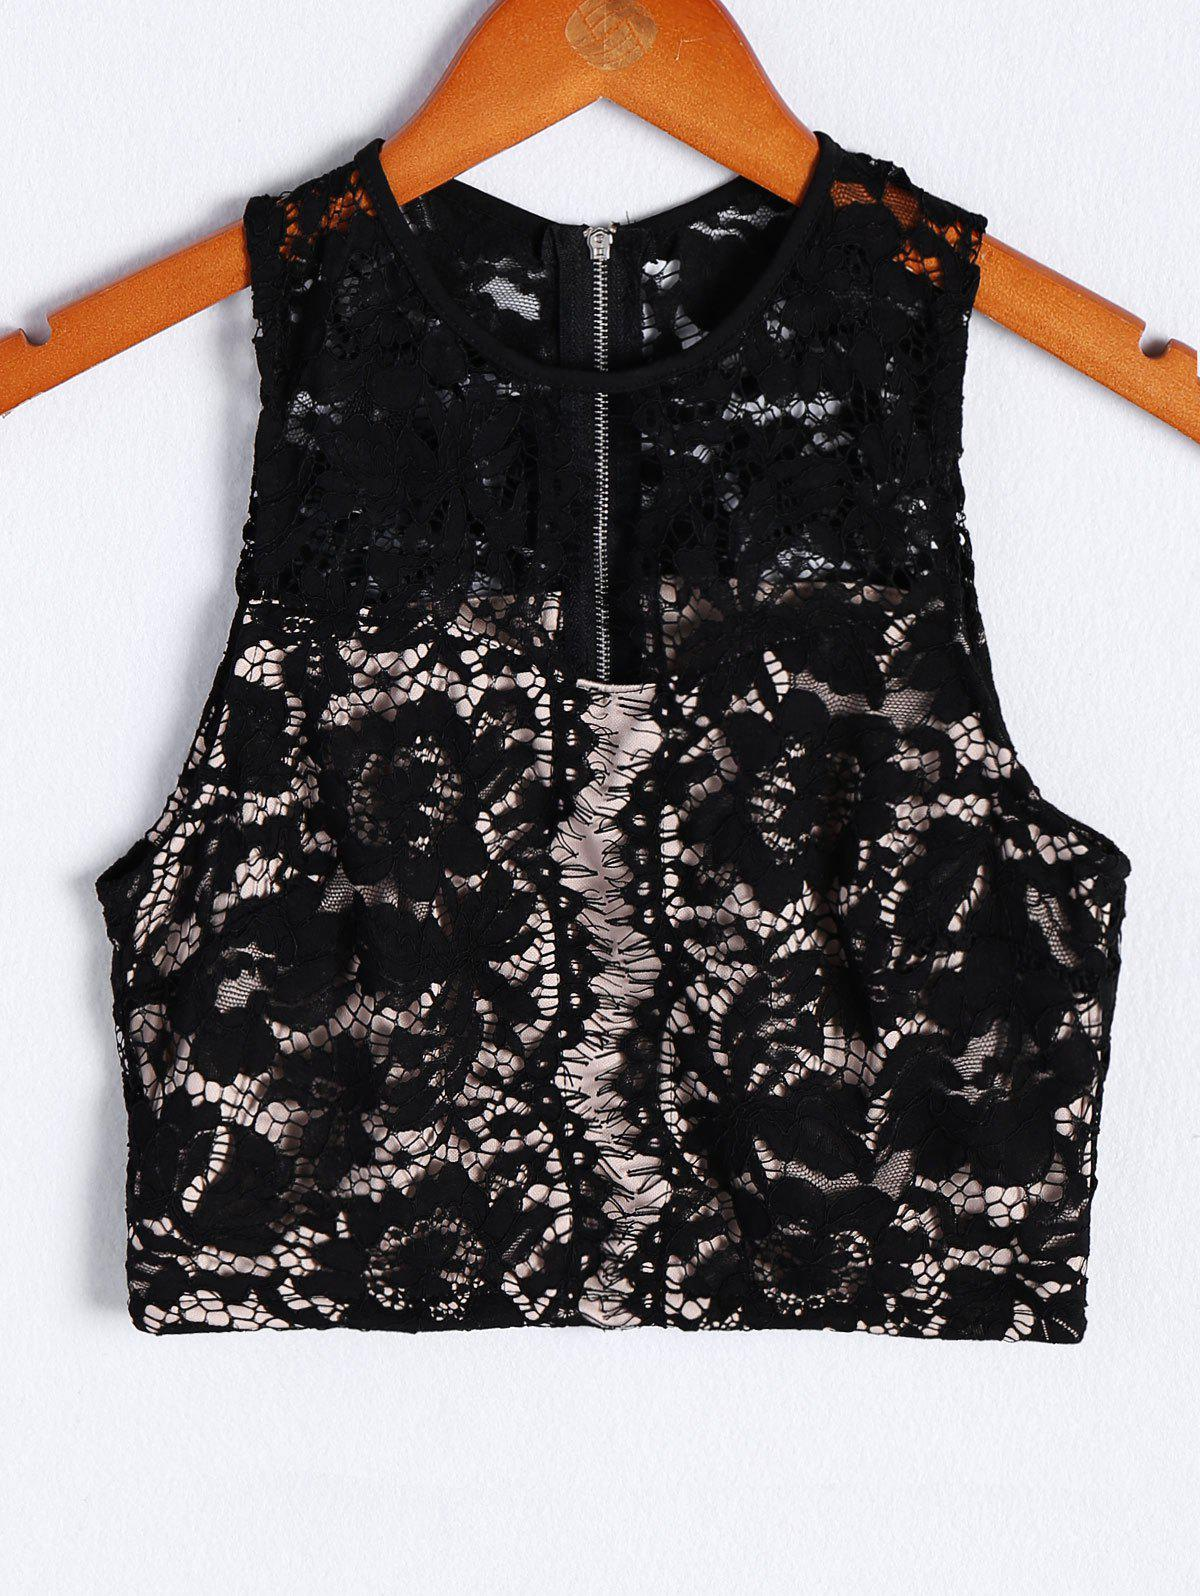 Fashionable Women's RoundNeck Lace Openwork Tank Top